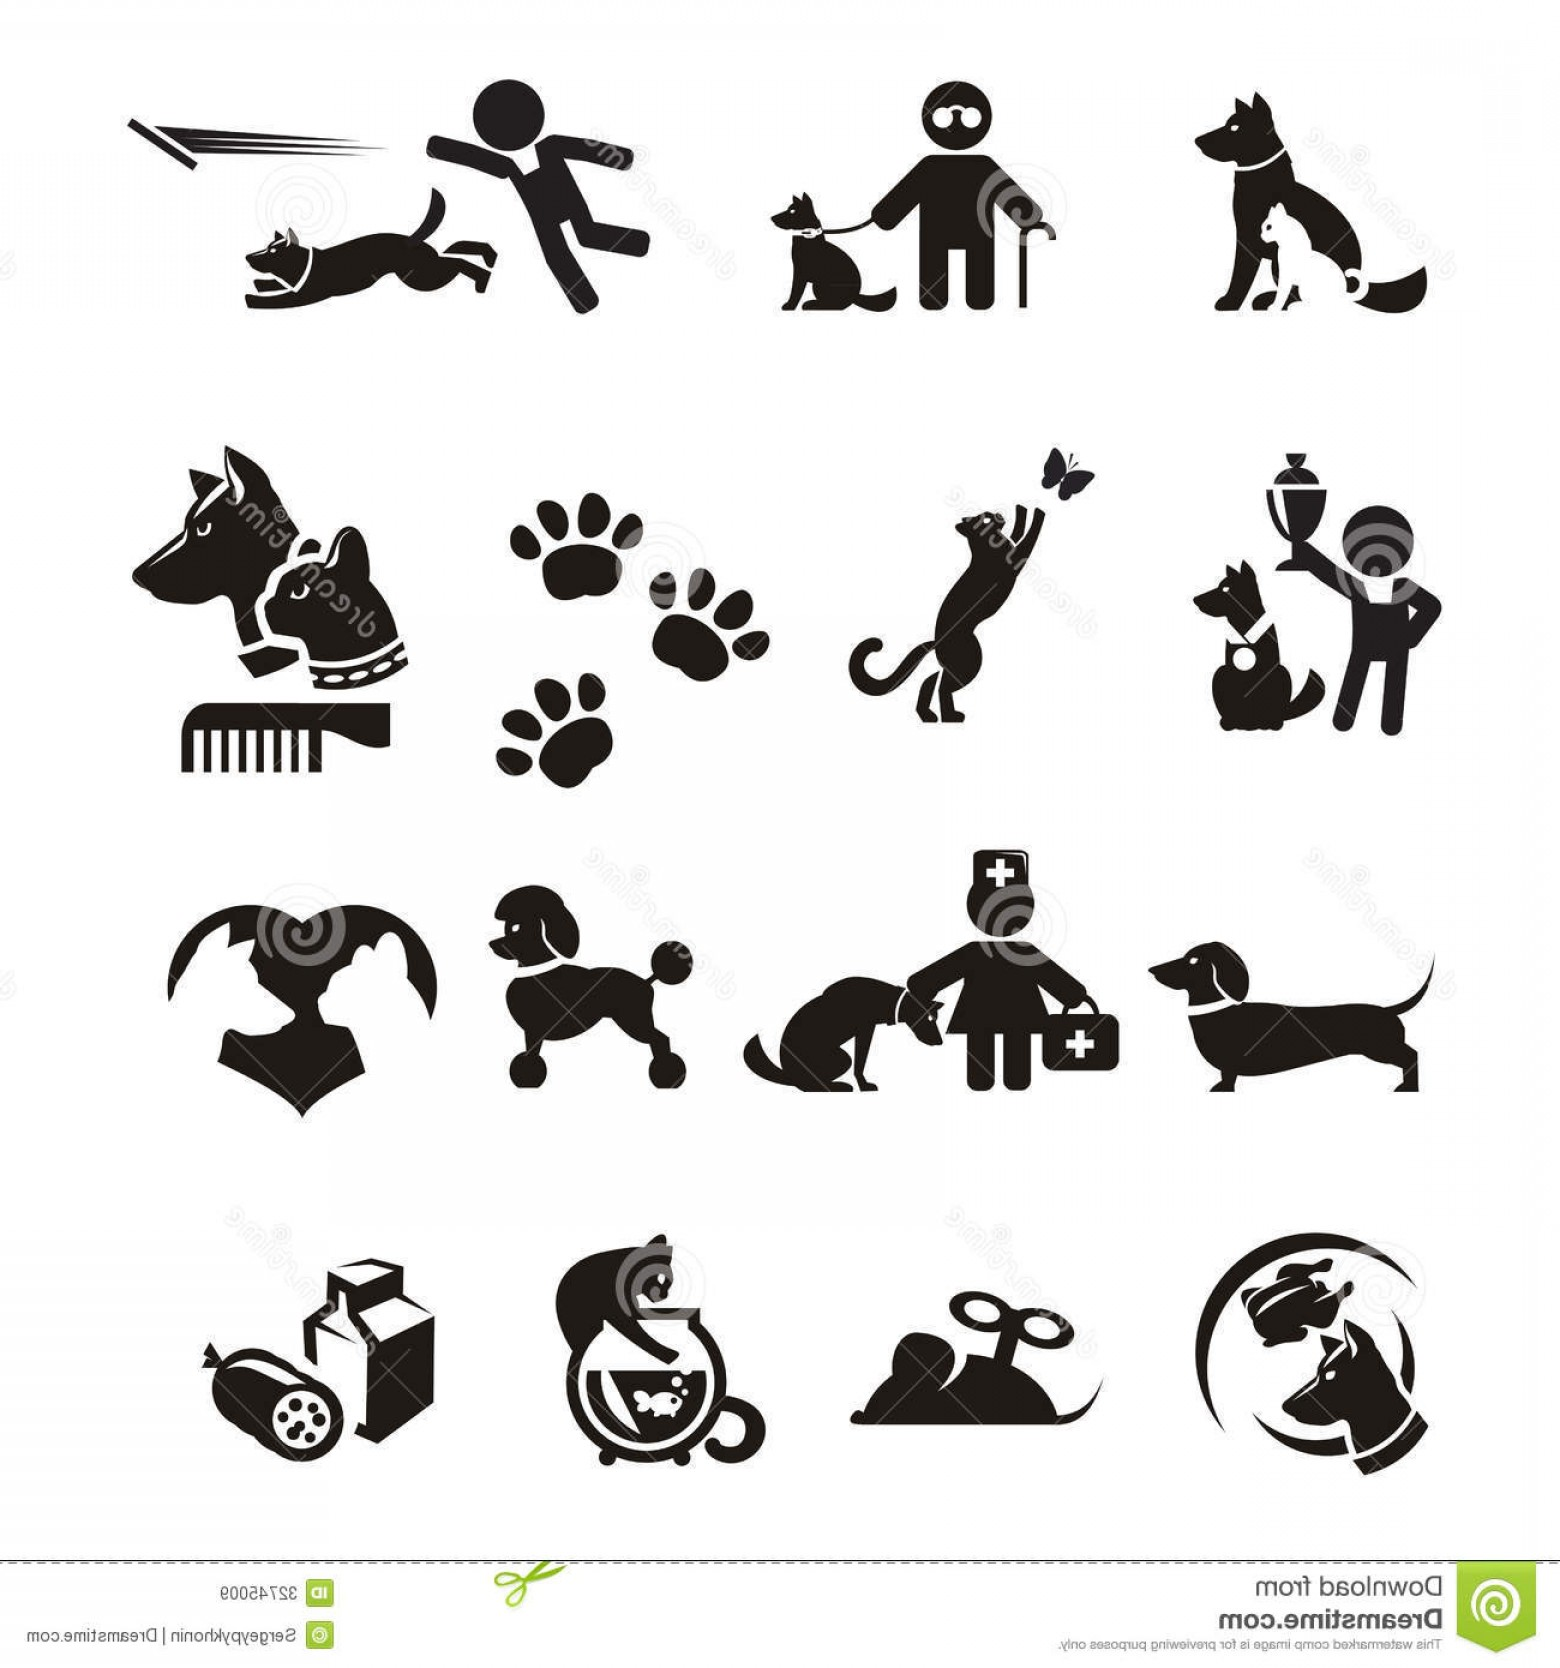 Dog And Cat Vector Illustration: Royalty Free Stock Images Dog Cat Icons Set Authors Illustration Vector Image